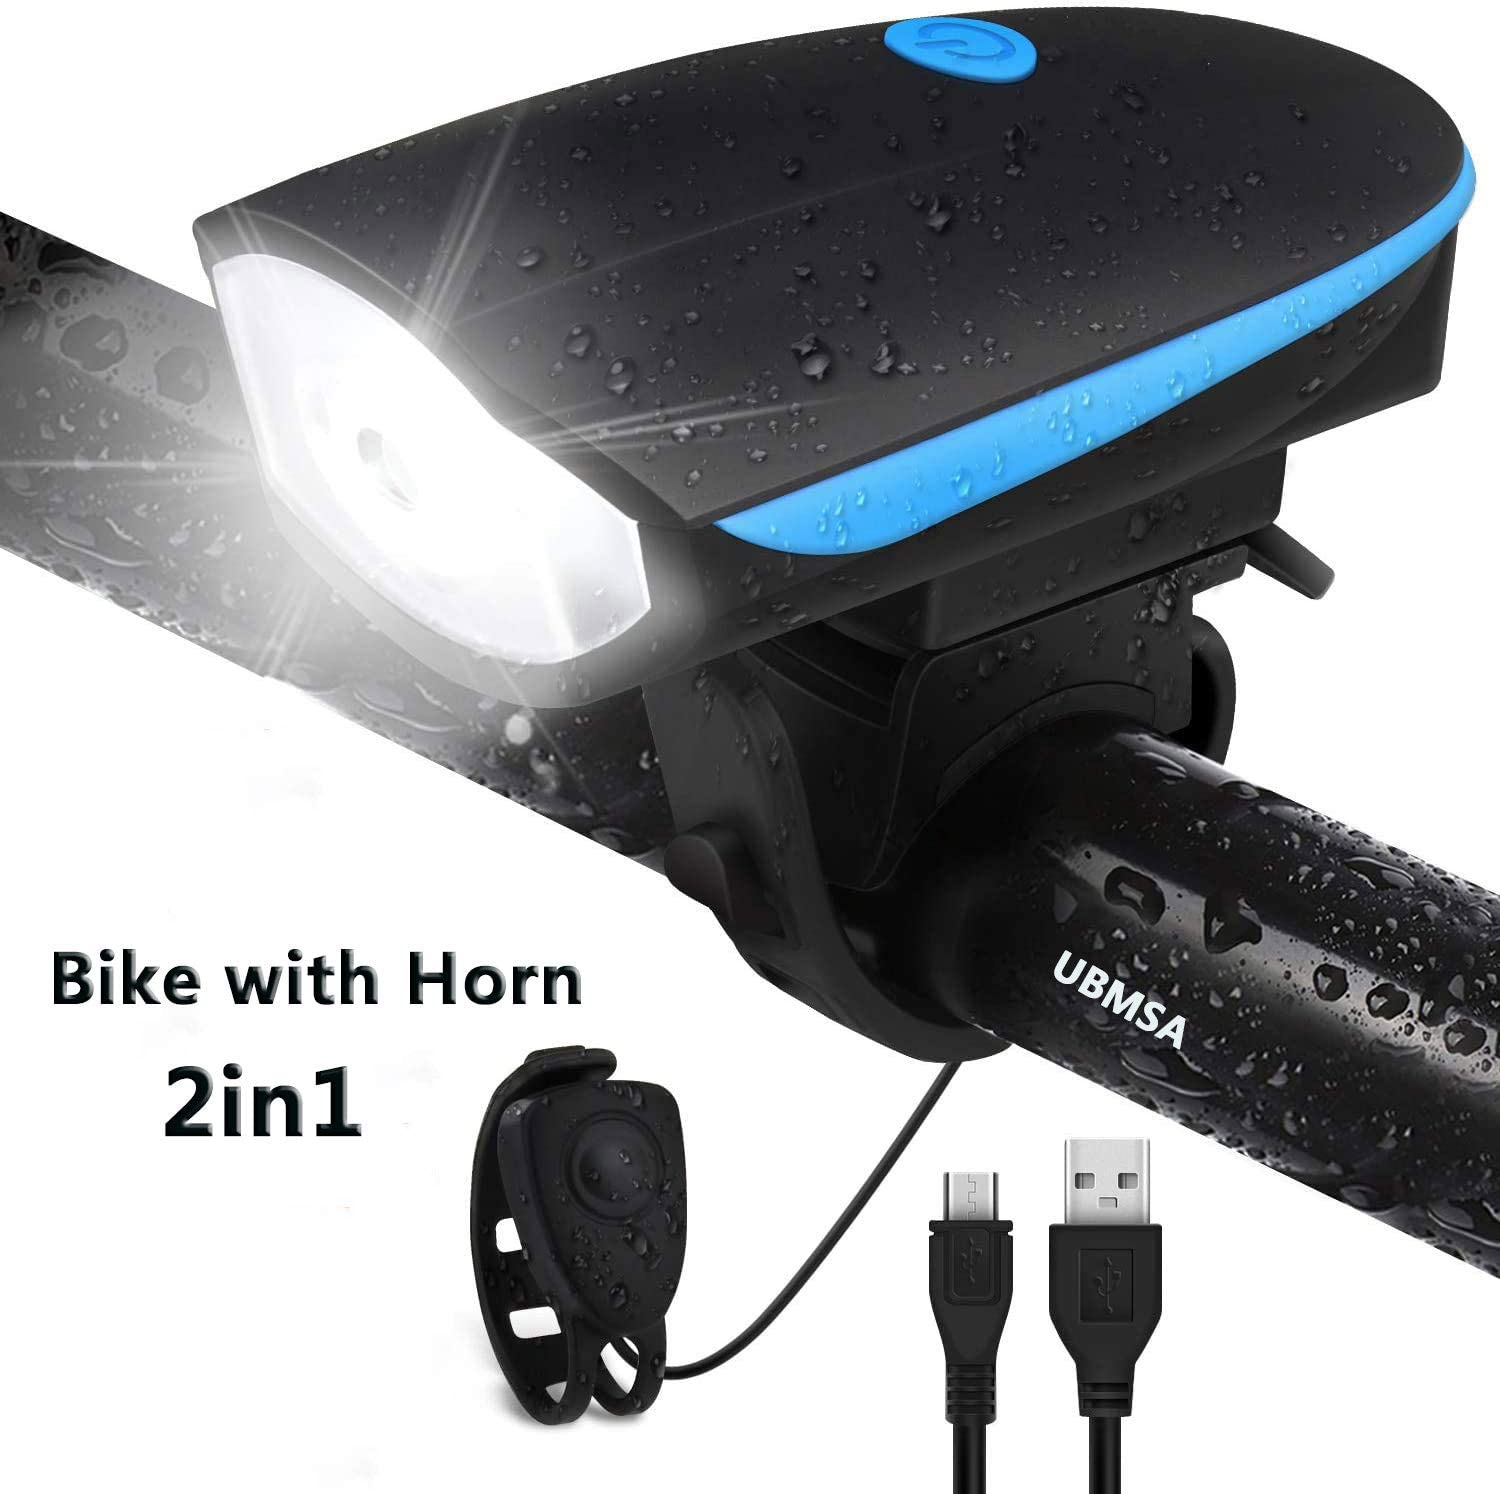 Road /& Mountain Bike 3Pack Bike Front Lights for All Bicycles USB Rechargeable